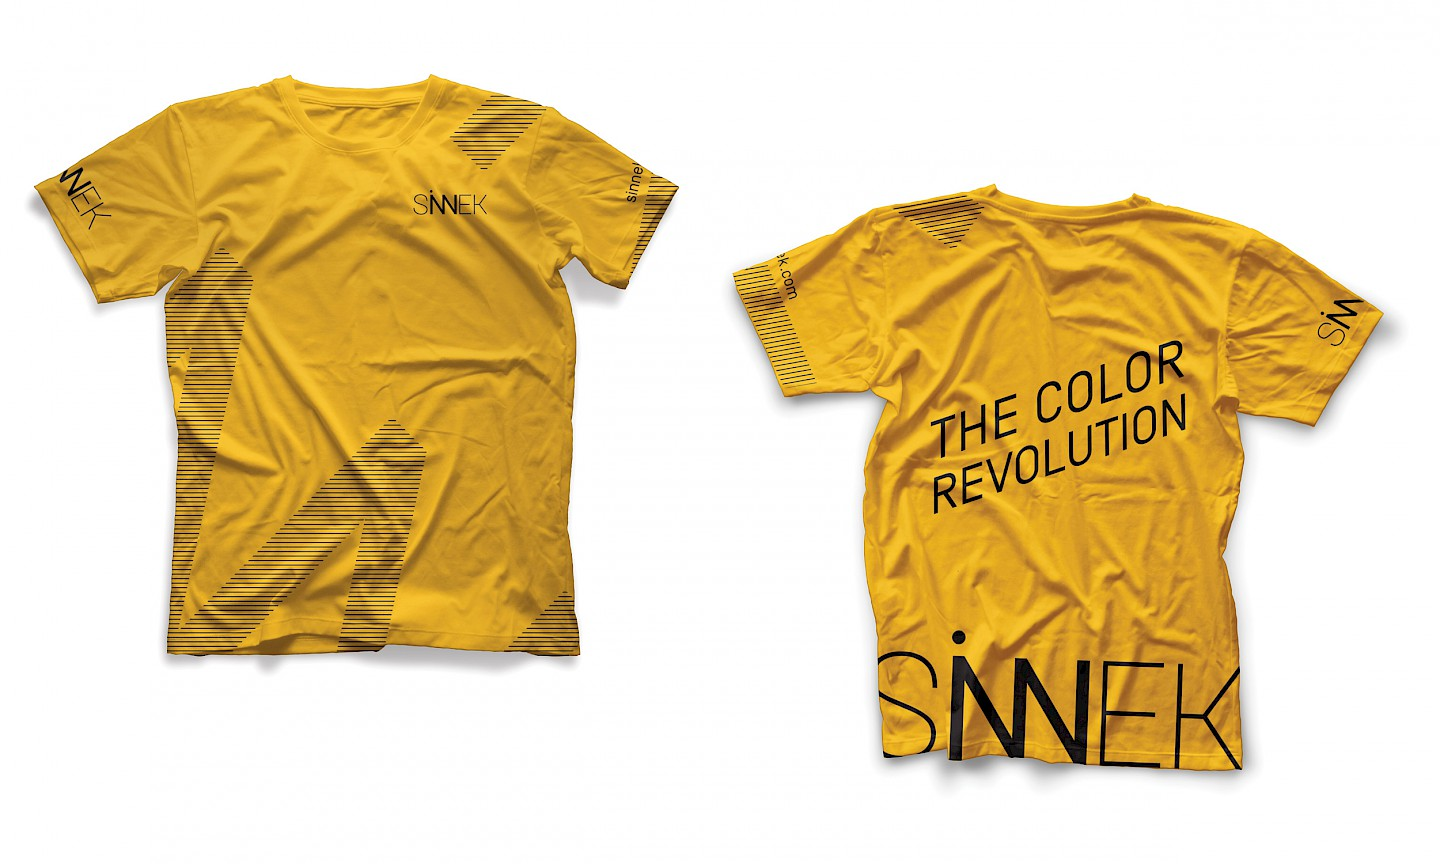 move camiseta sinnek branding